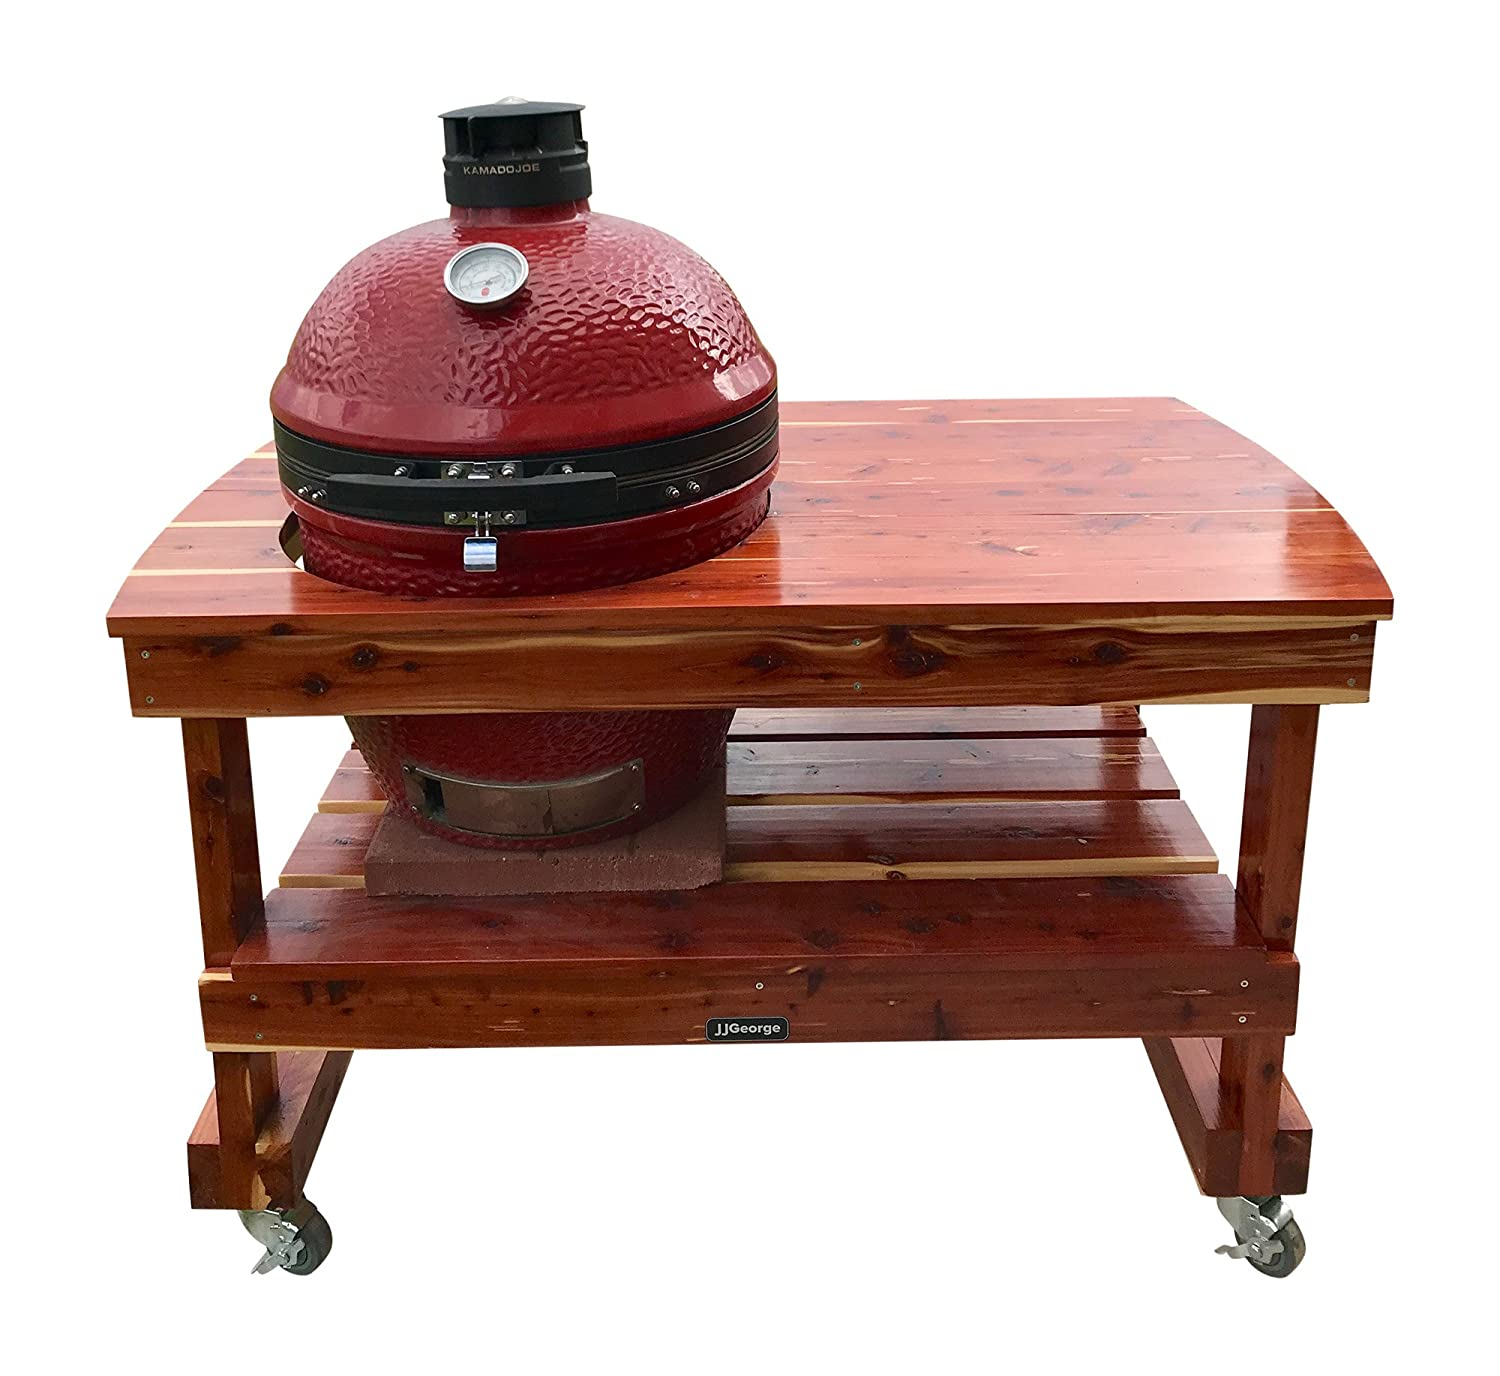 Jjgeorge Grill Table For Classic Kamado Joe Ii Free Table Cover Included